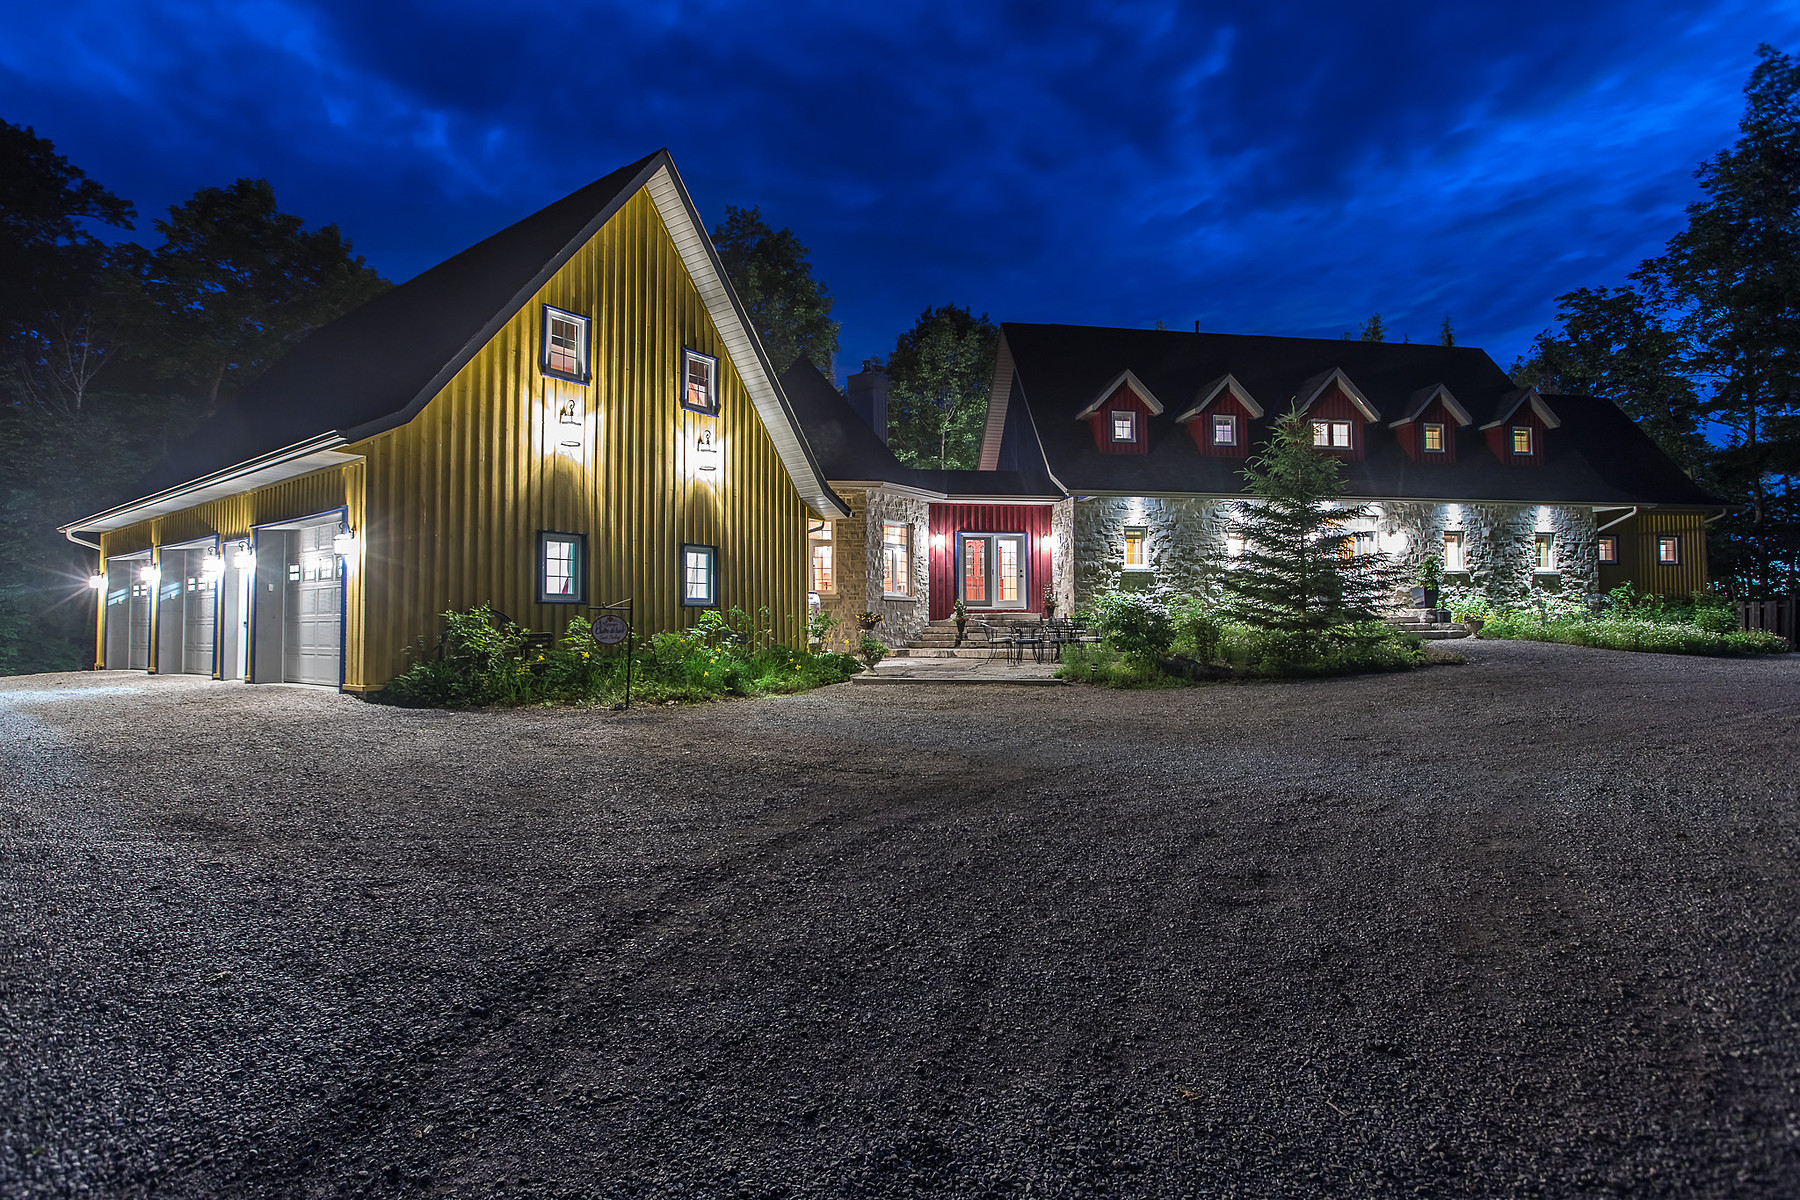 Other Residential for Sale at Kawartha Lakes Chateau 299 Bear Creek Rd, Buckhorn, Ontario, K0L 1J0 Canada